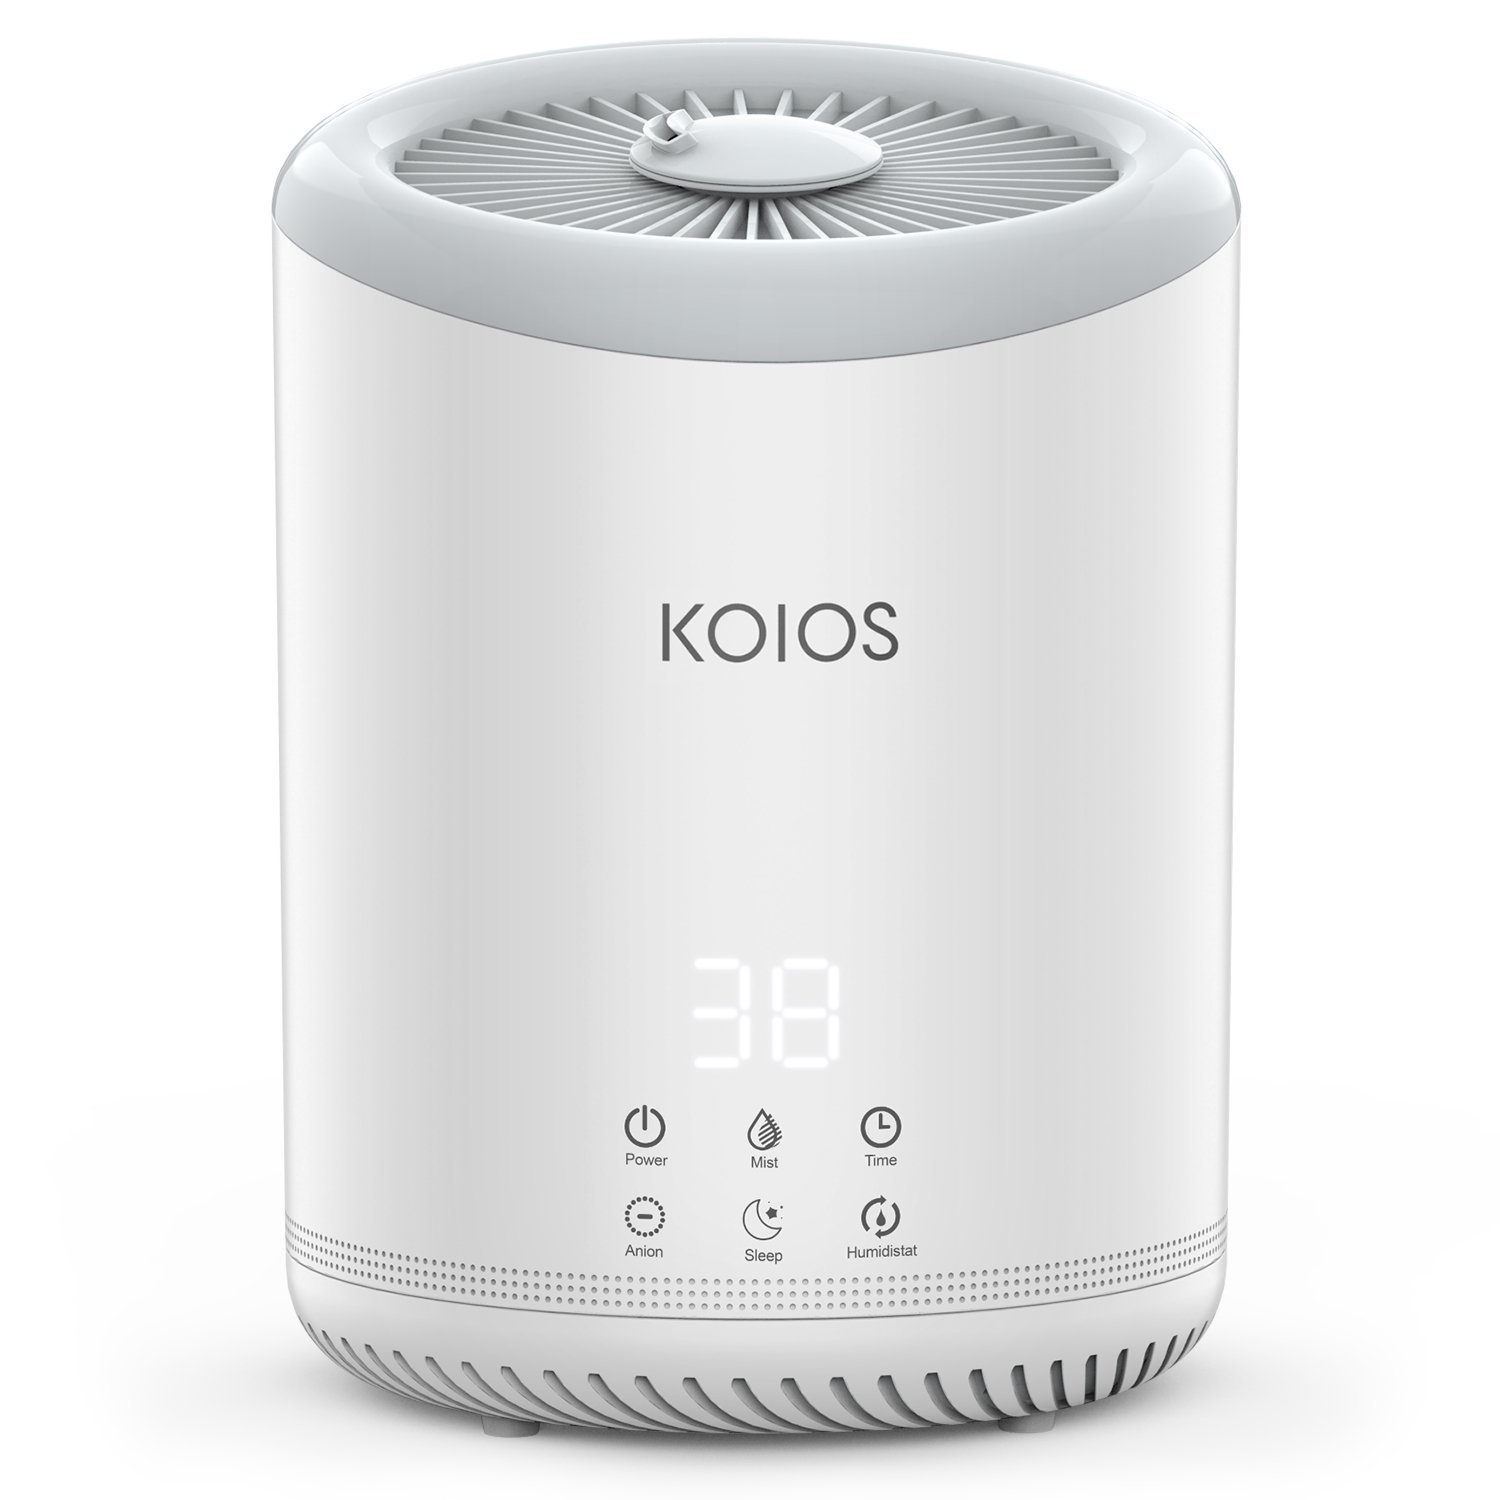 KOIOS Top Fill Humidifiers, Ultrasonic Cool Mist Humidifier With 3